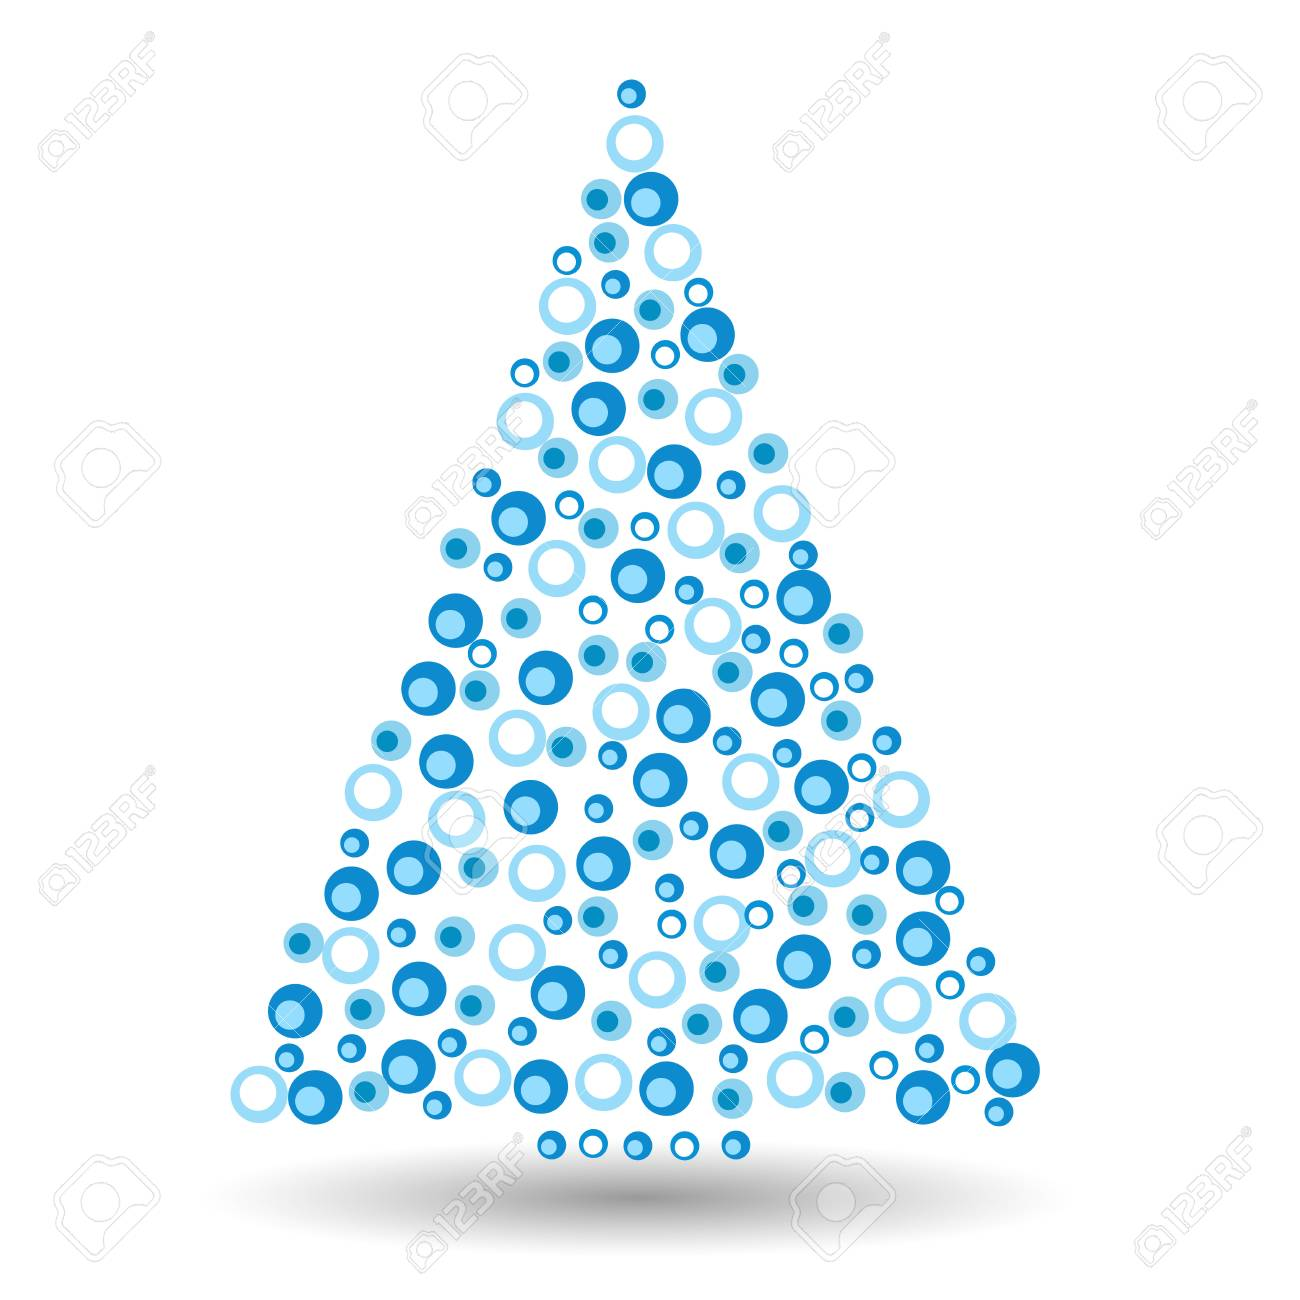 Simple Abstract Christmas Tree Of Dots Or Circles In A Triangle Royalty Free Cliparts Vectors And Stock Illustration Image 67175315